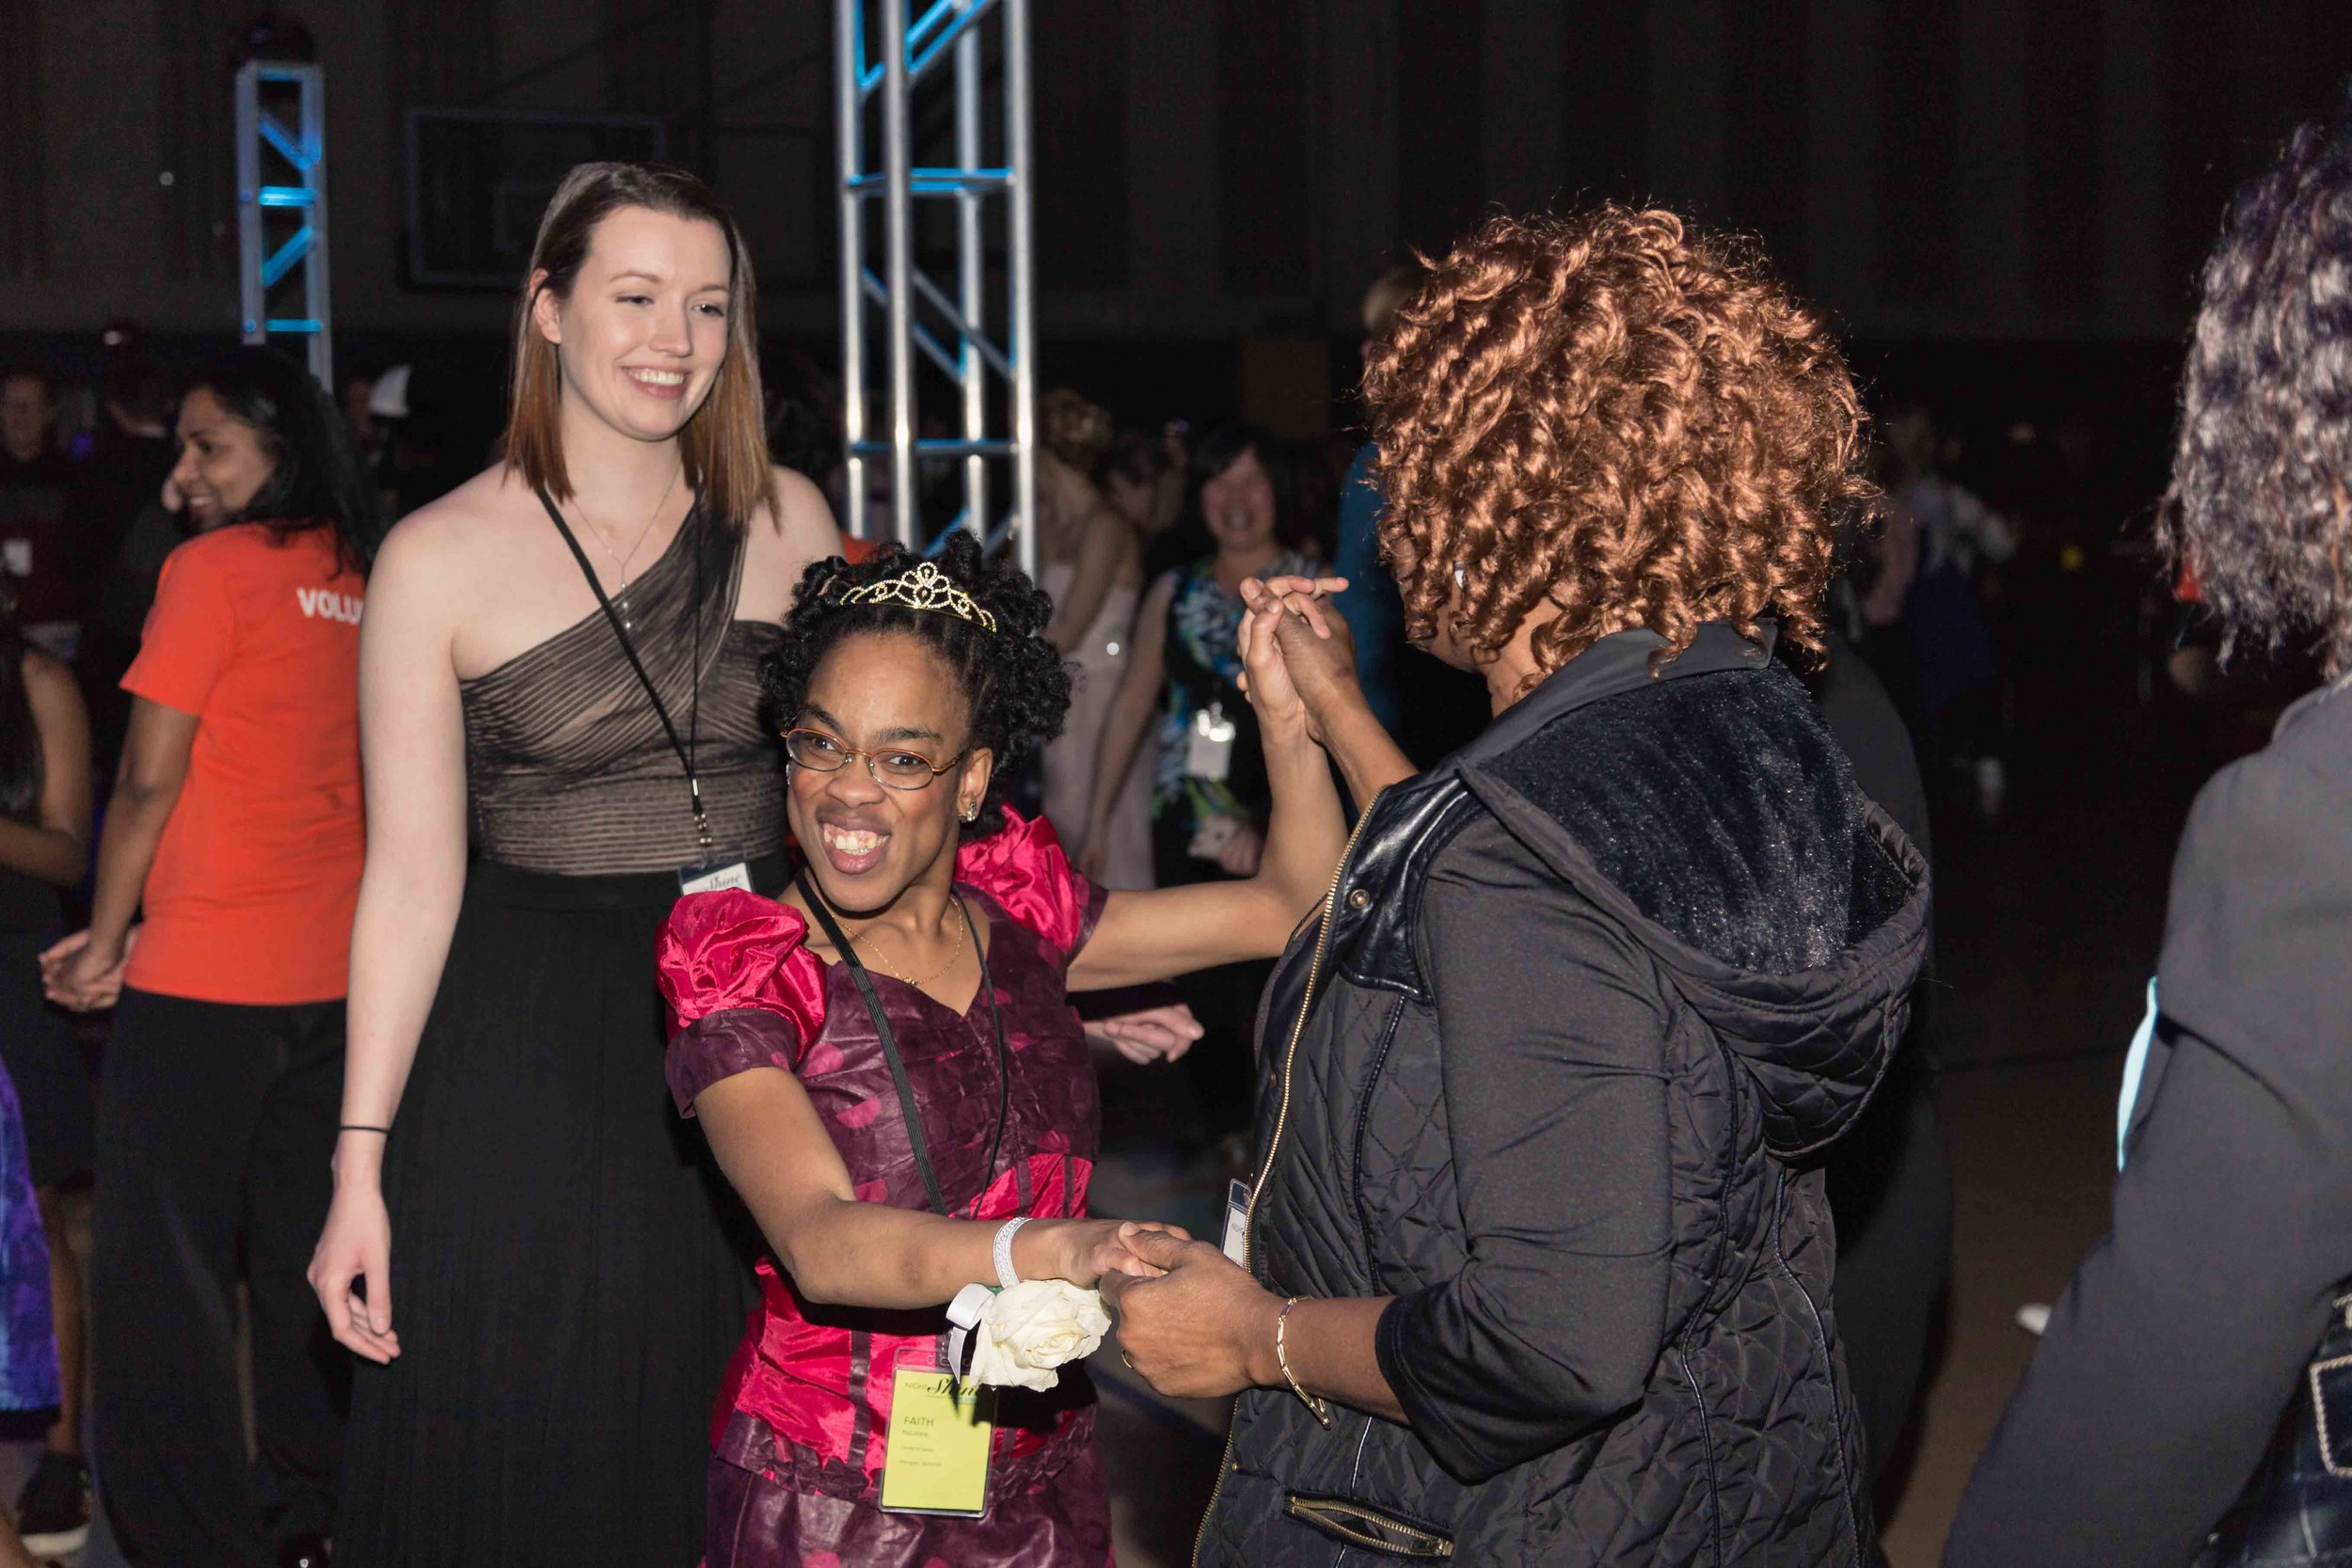 InBetweenDreamsWedding_NightToShine2018_HorizonChurch (389 of 514).jpg